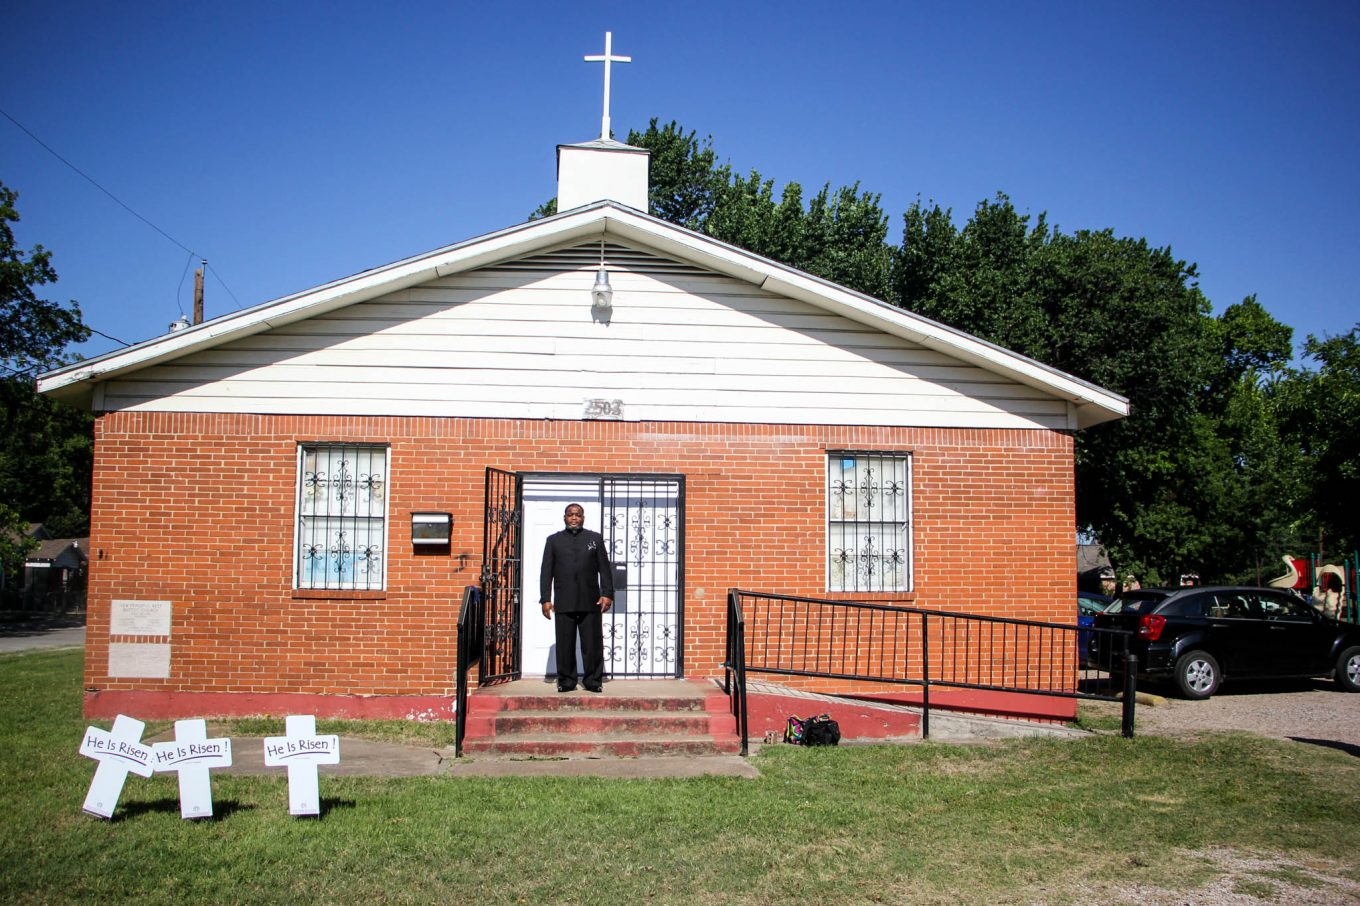 Cedric B. West is pastor at the Ark of God Revival Temple in West Dallas. Photo/Jessica Diaz-Hurtado